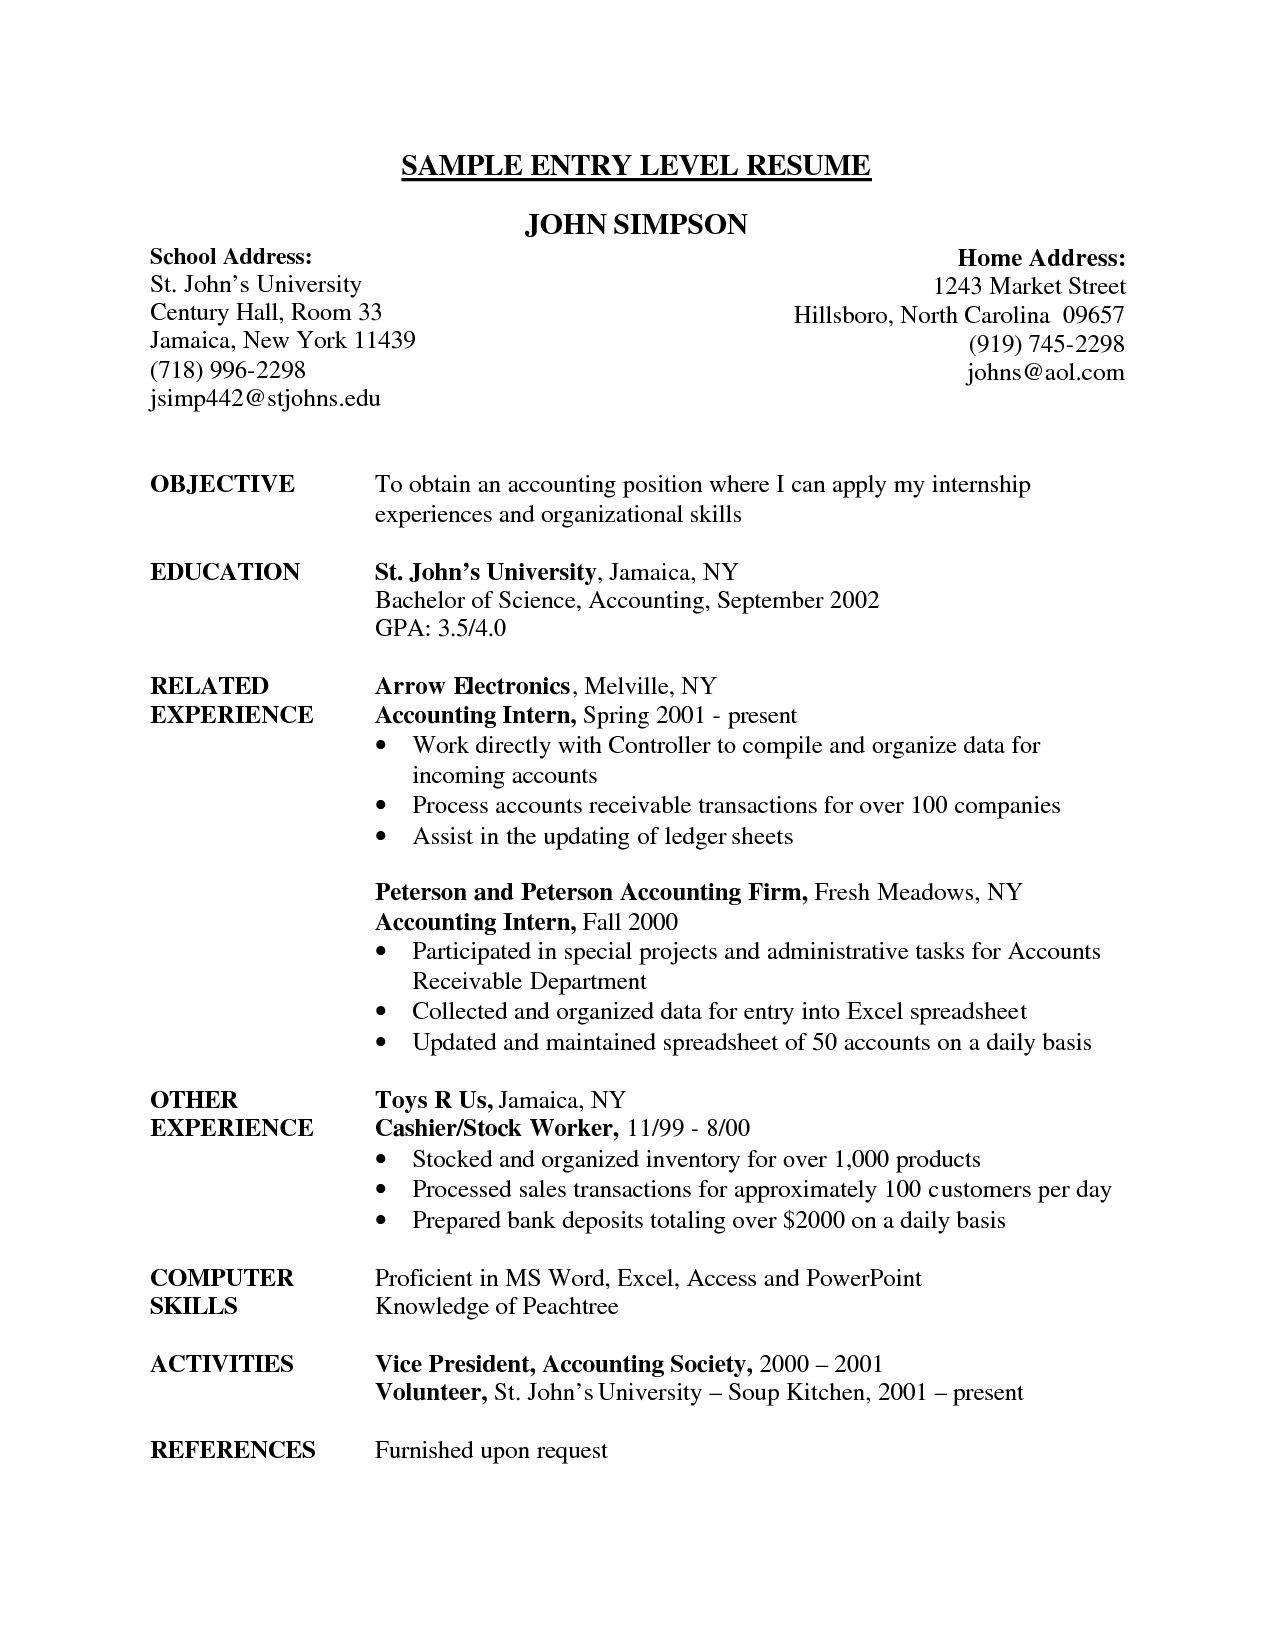 entry level resume example entry level job resume examples 26161fd4f - Entry Level Job Resume Examples